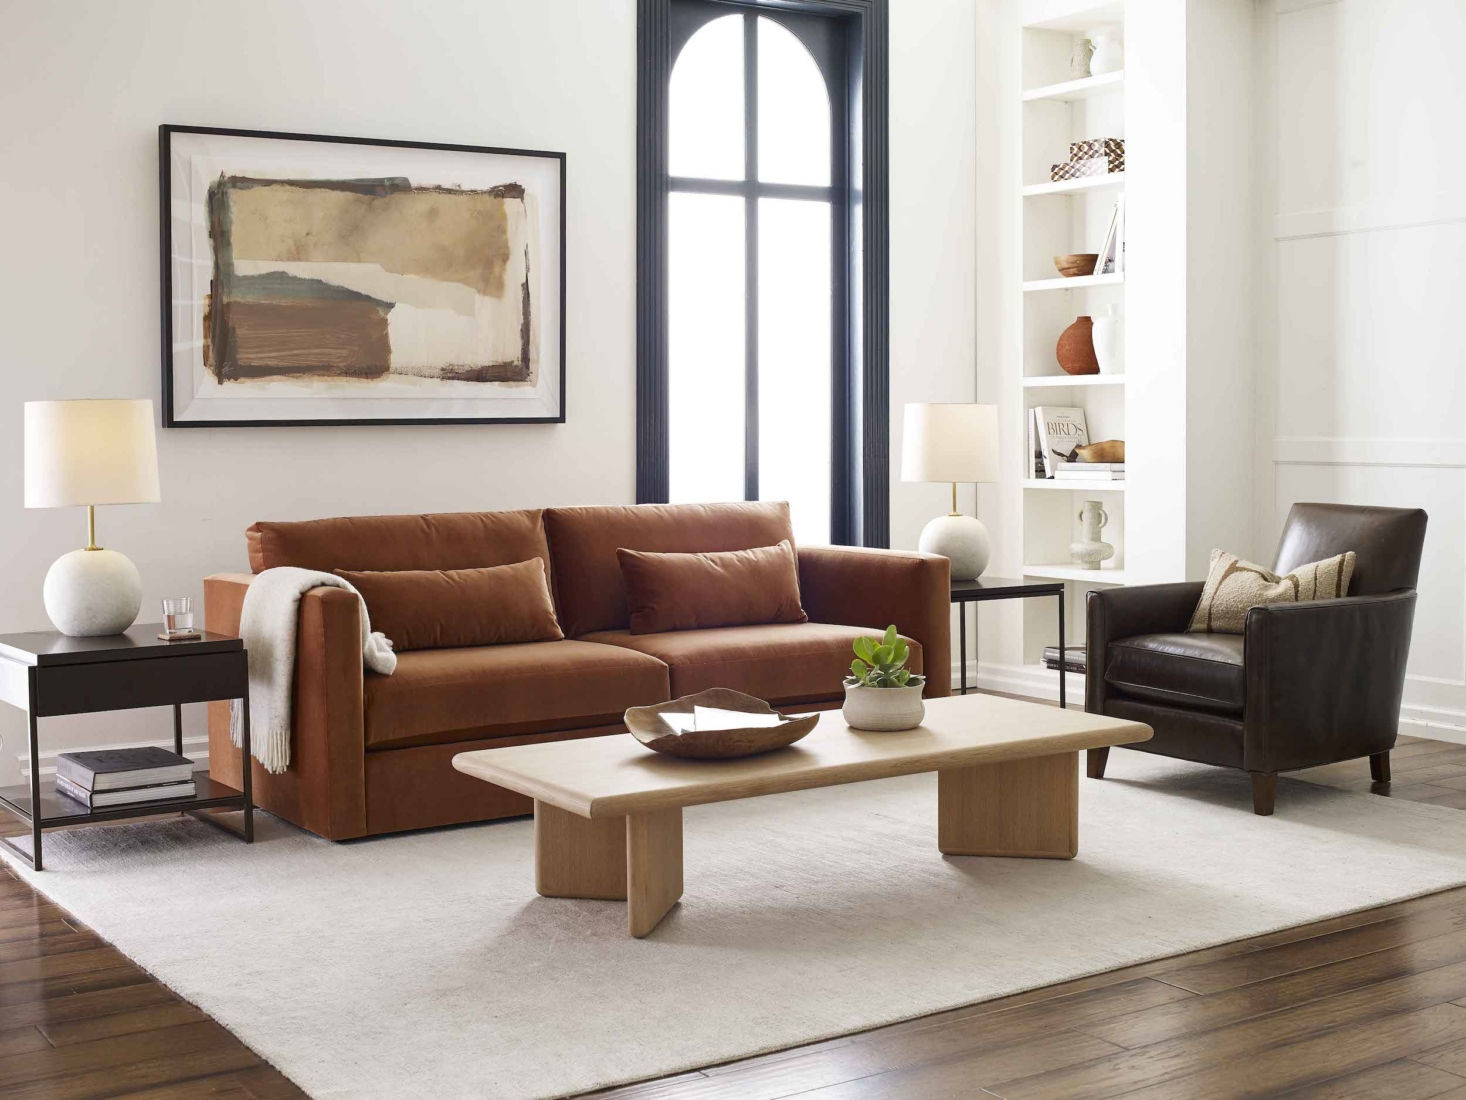 Reflections on Home: Multifunctional Furnishings Built for Comfort, from Mitchell Gold + Bob Williams